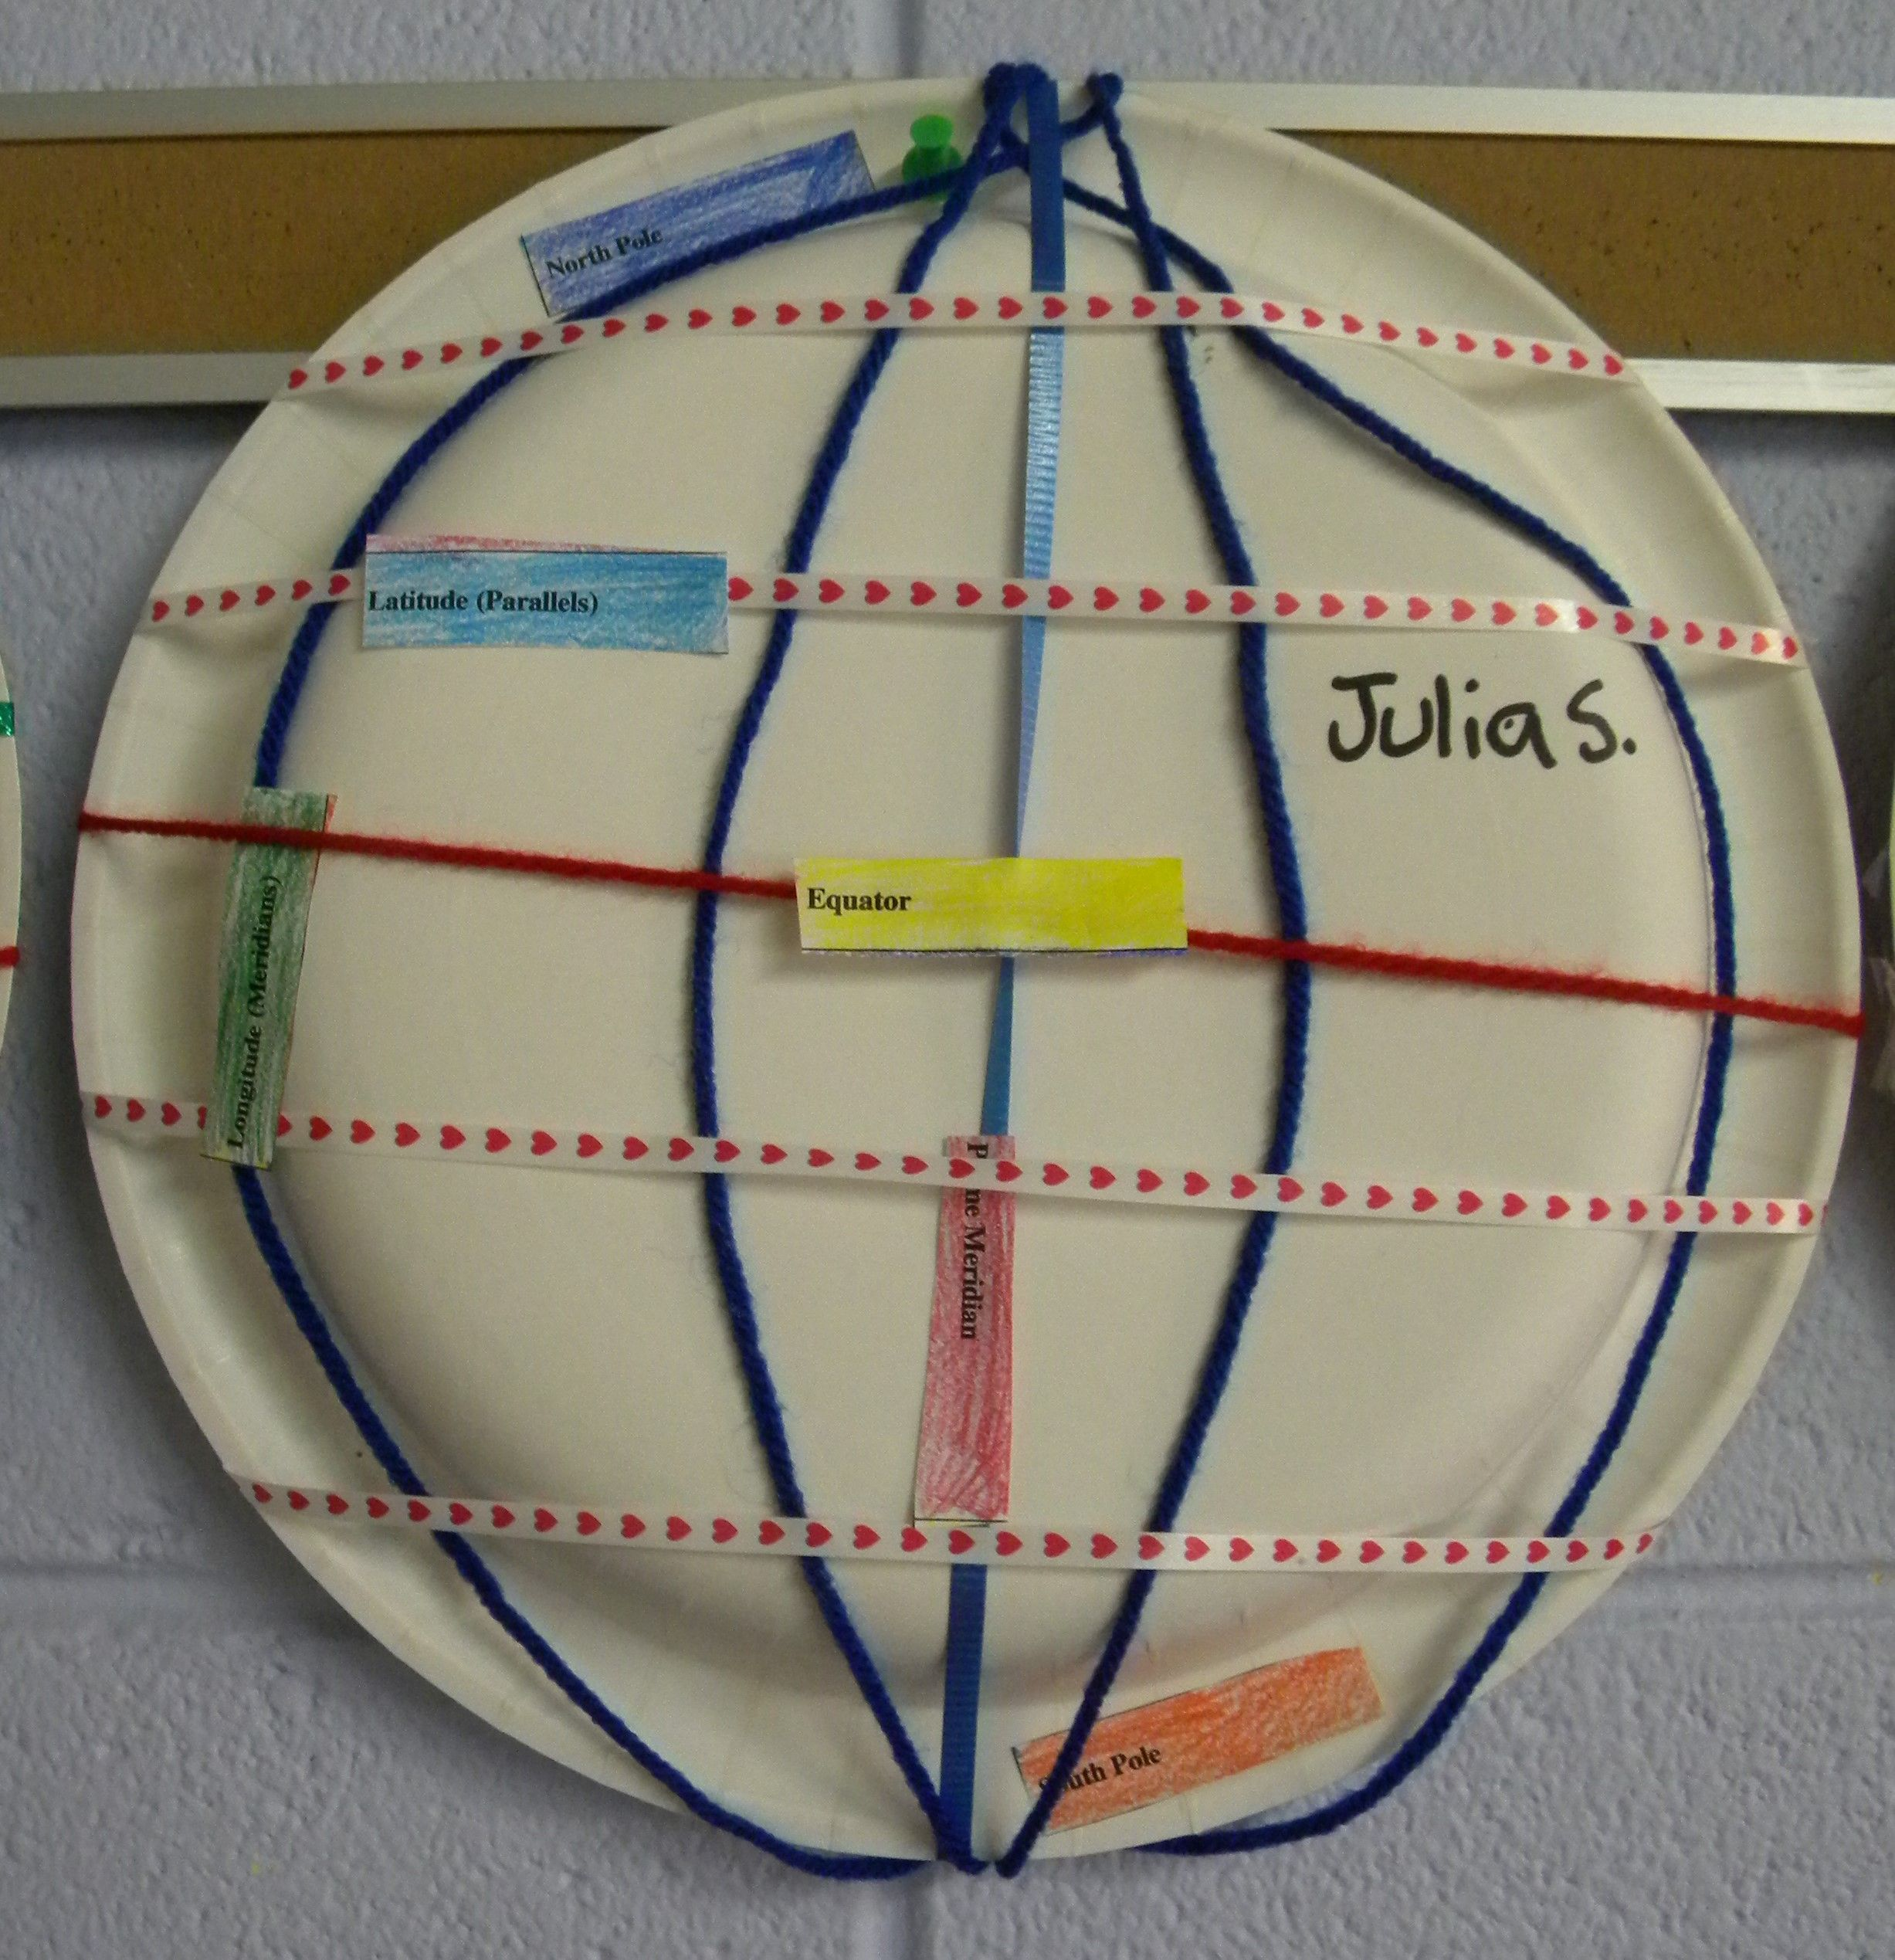 Project Based Assessment Demonstrating Latitude